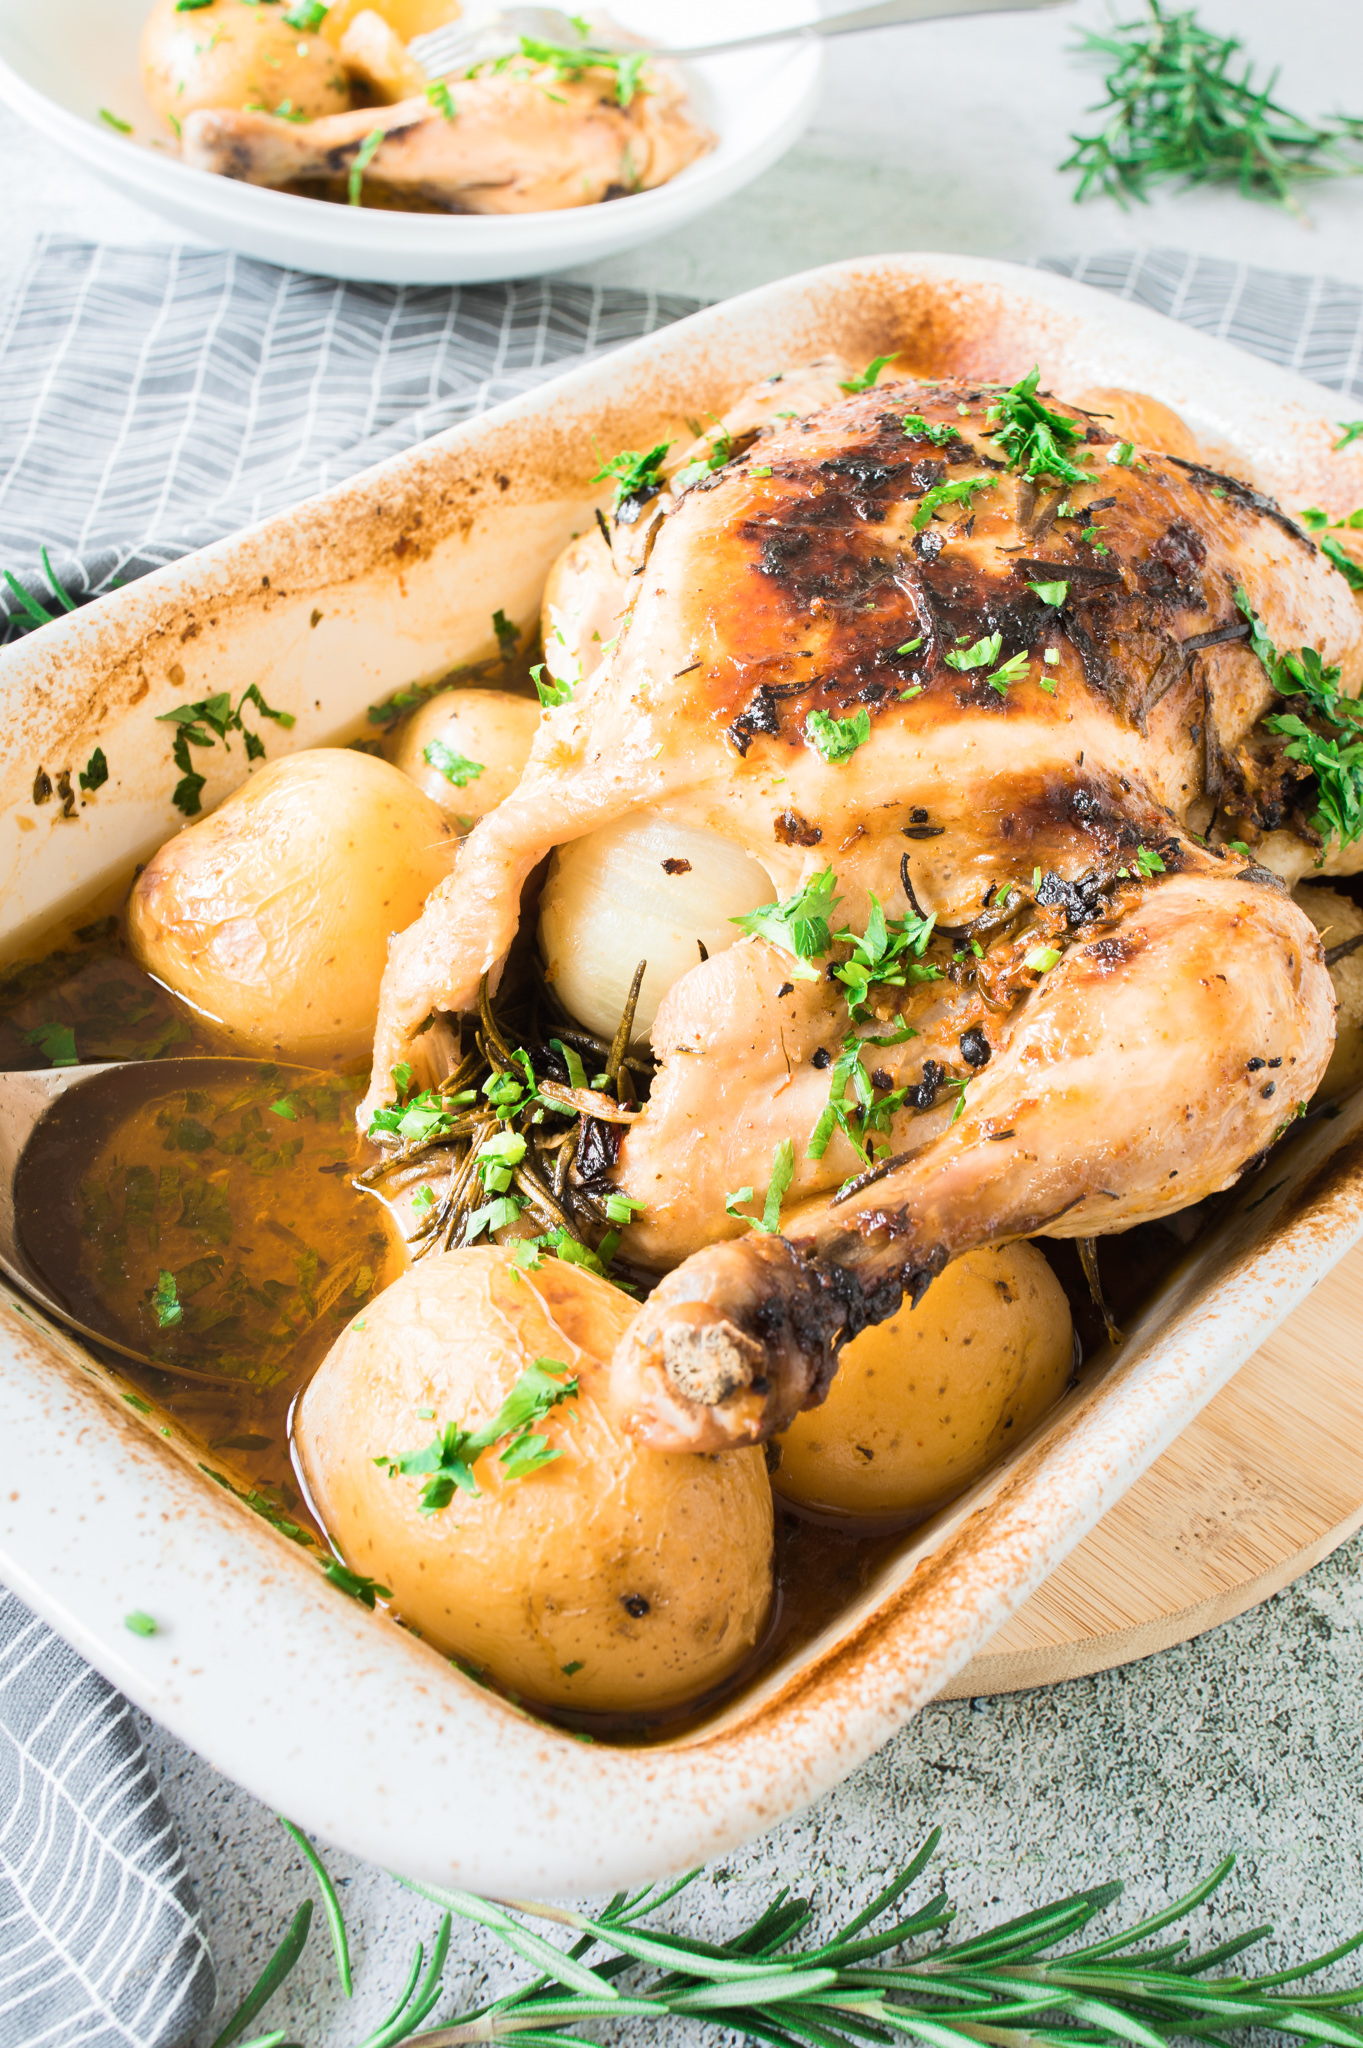 Whole Roasted Chicken with Potatoes in pan